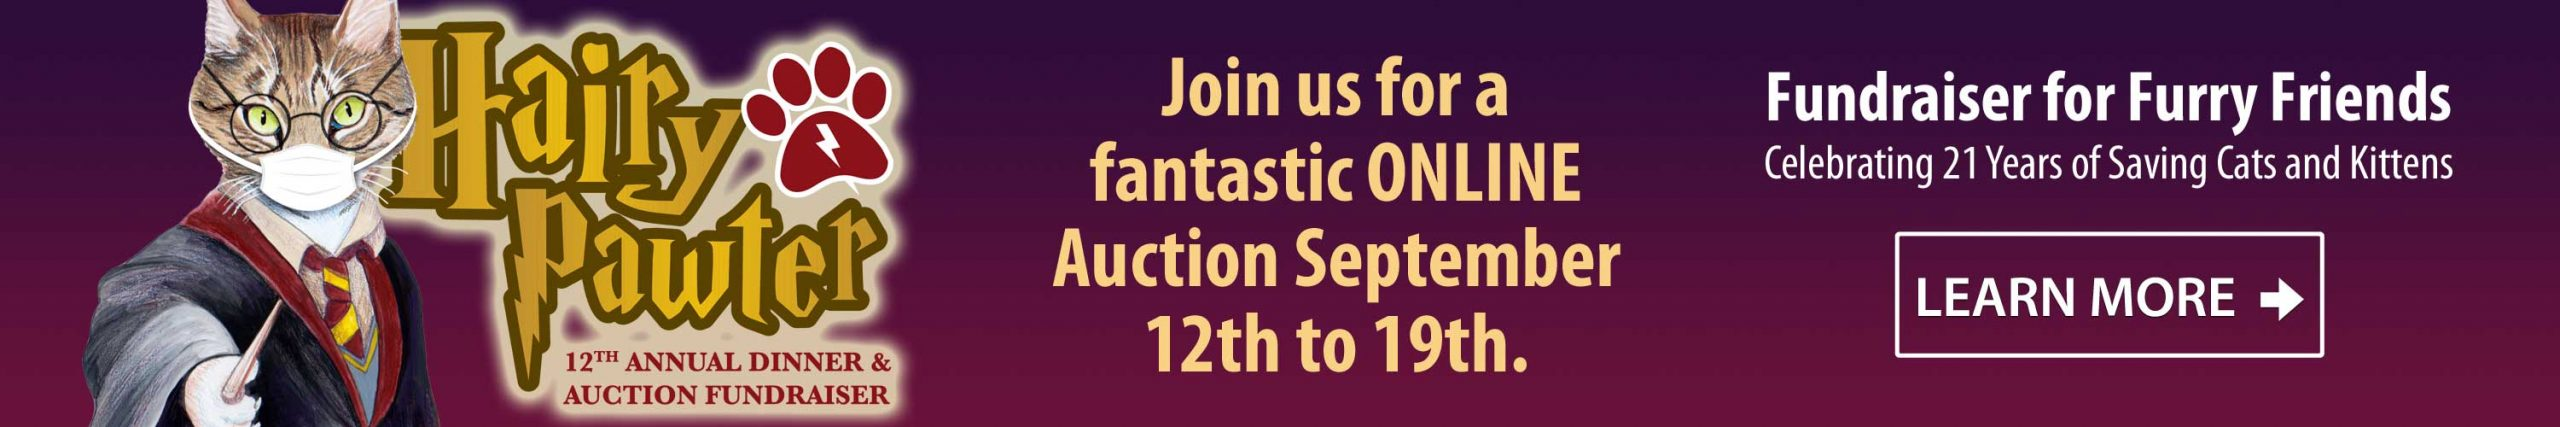 banner-hairy-pawter-online-auction-online-version-scaled